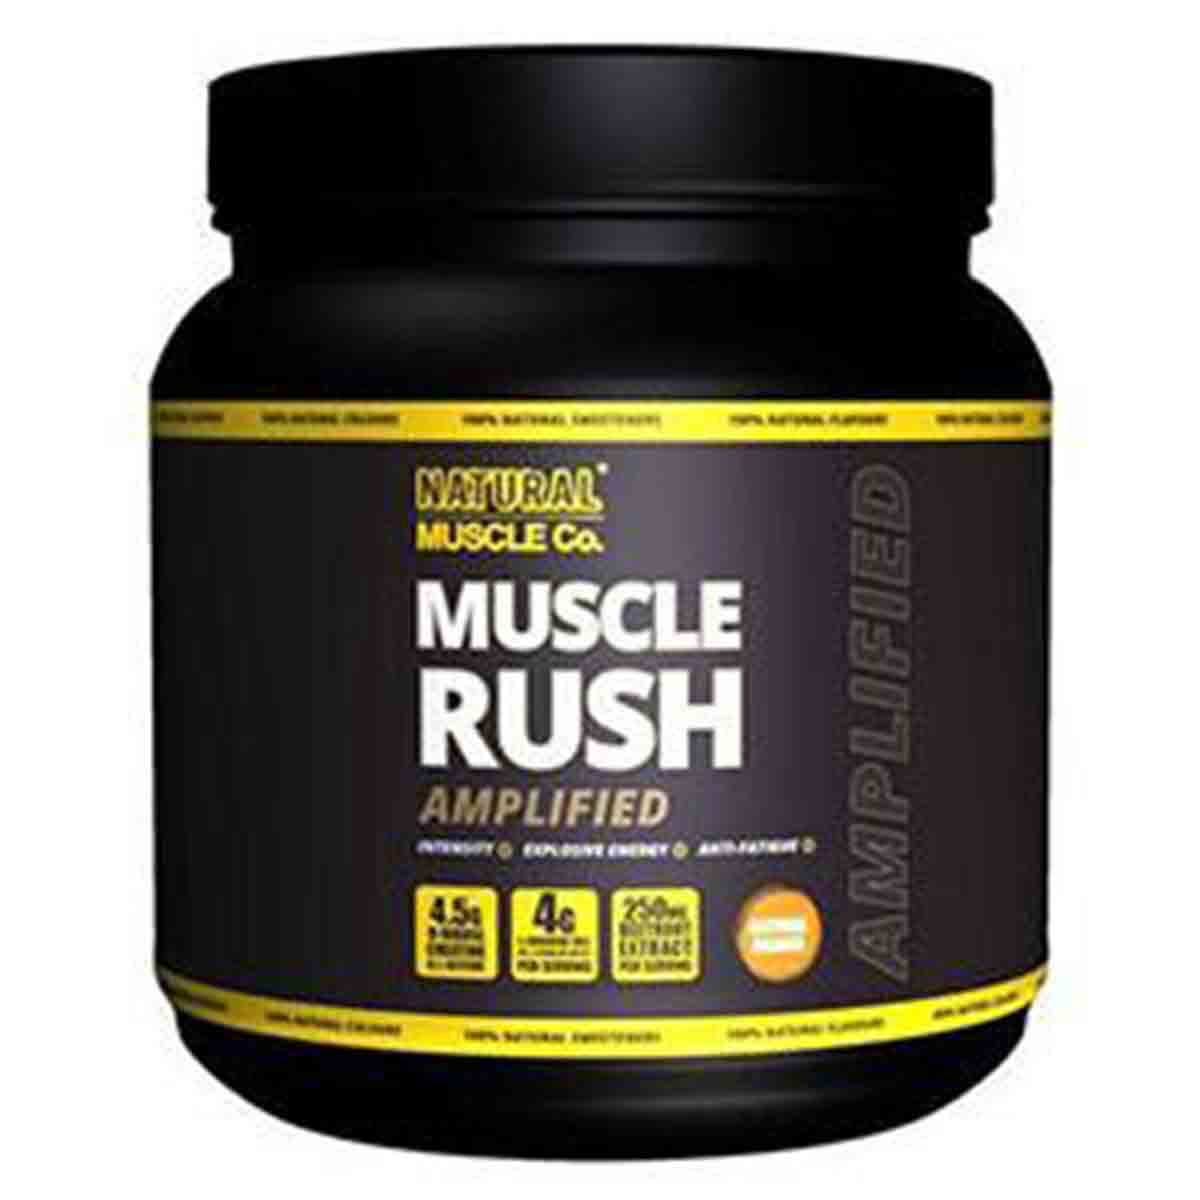 Natural Muscle Co. Muscle Rush Amplified